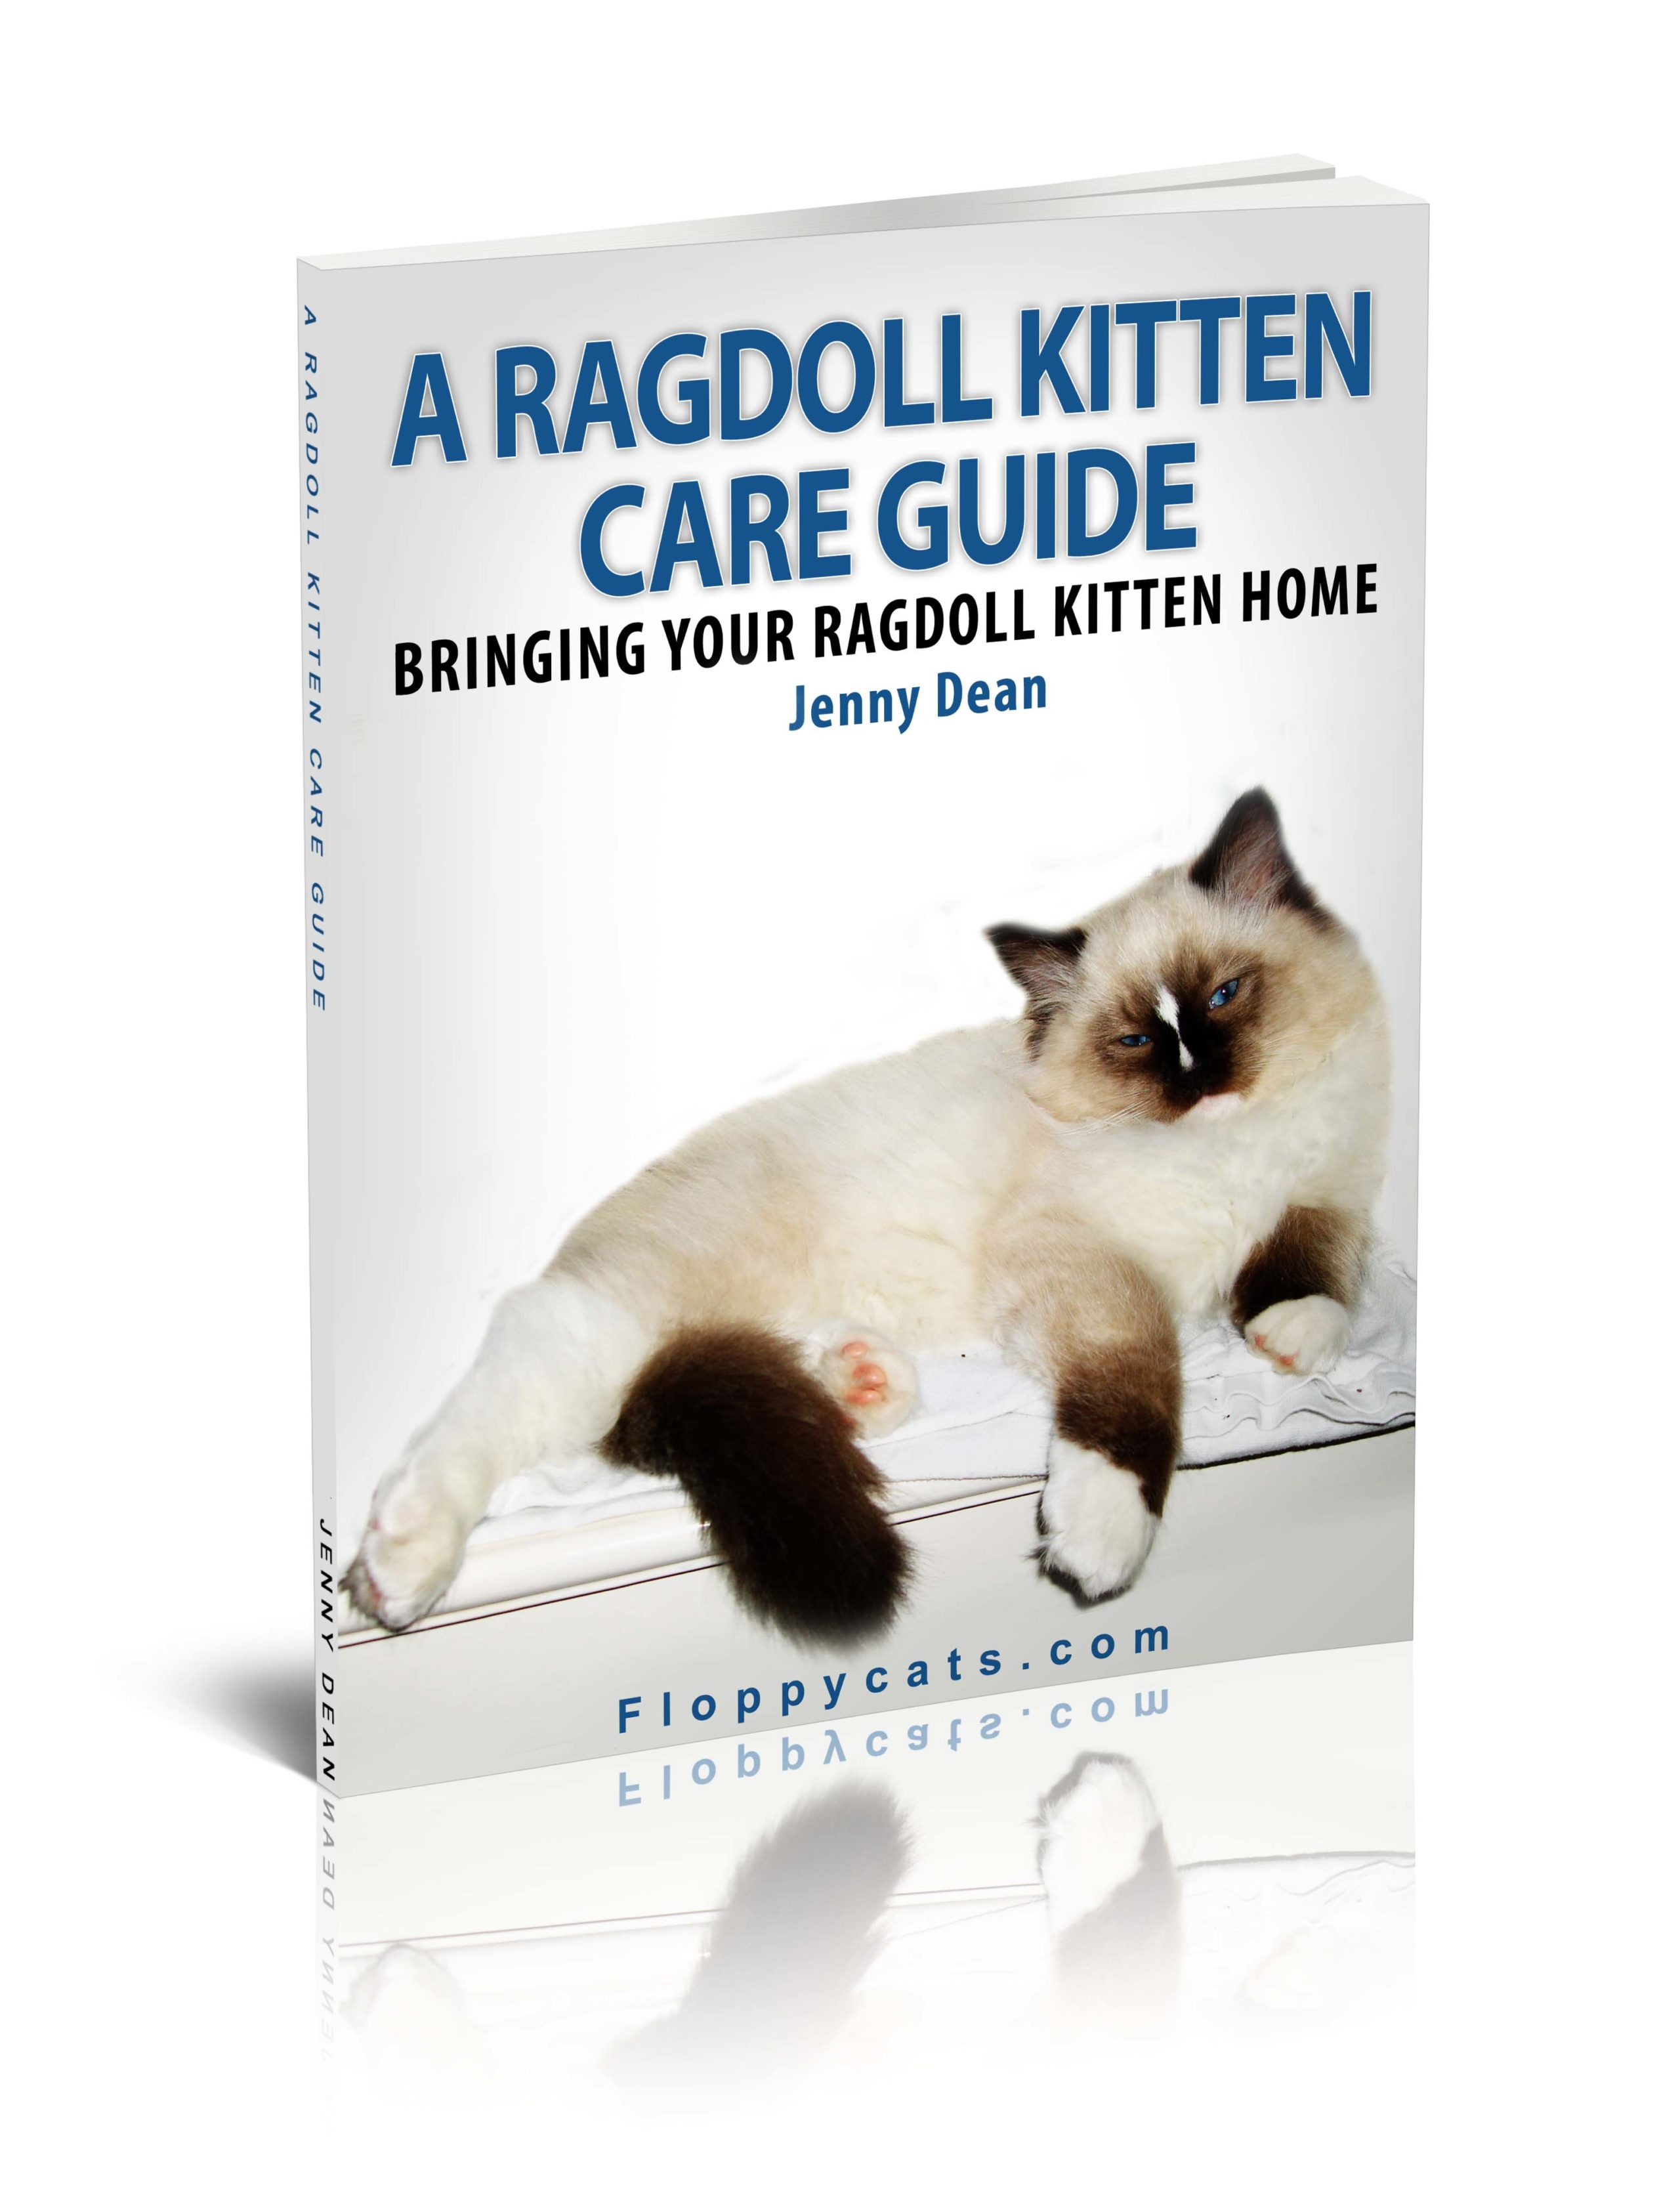 A Ragdoll Kitten Care Guide: Bringing Your Ragdoll Kitten Home October 2012